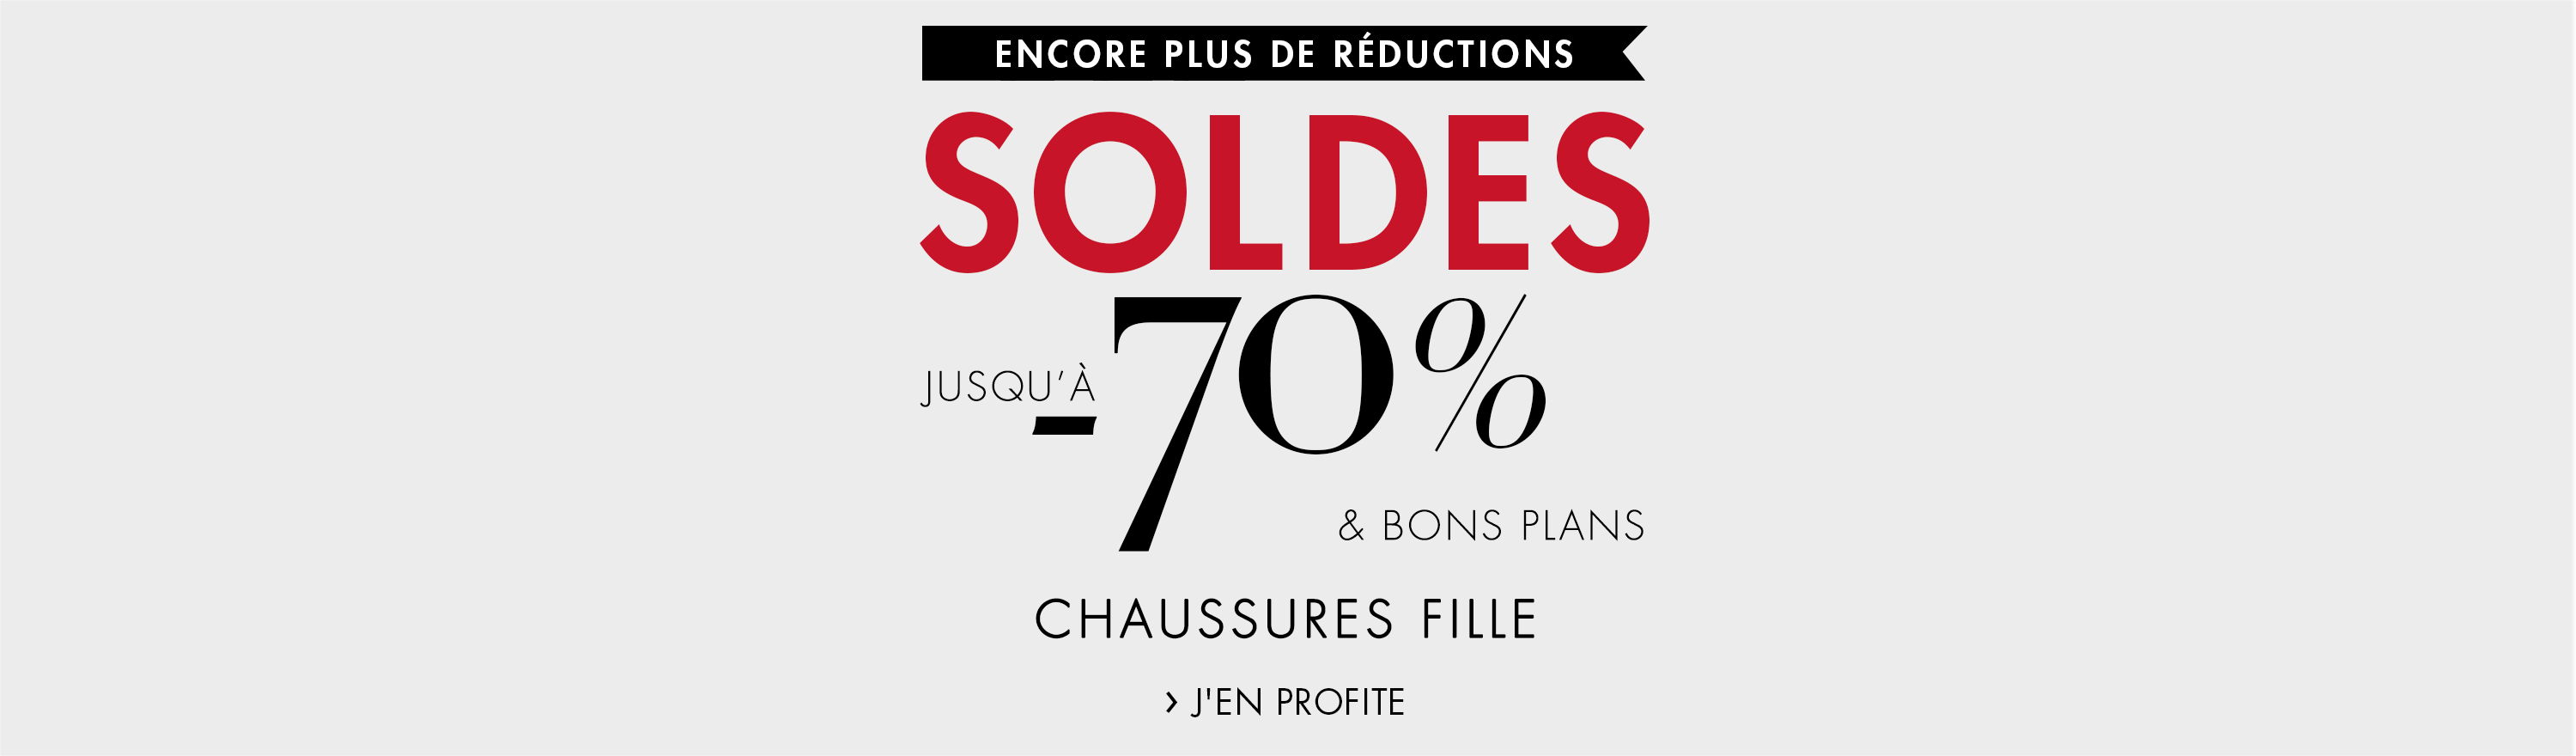 Soldes - Chaussures Fille